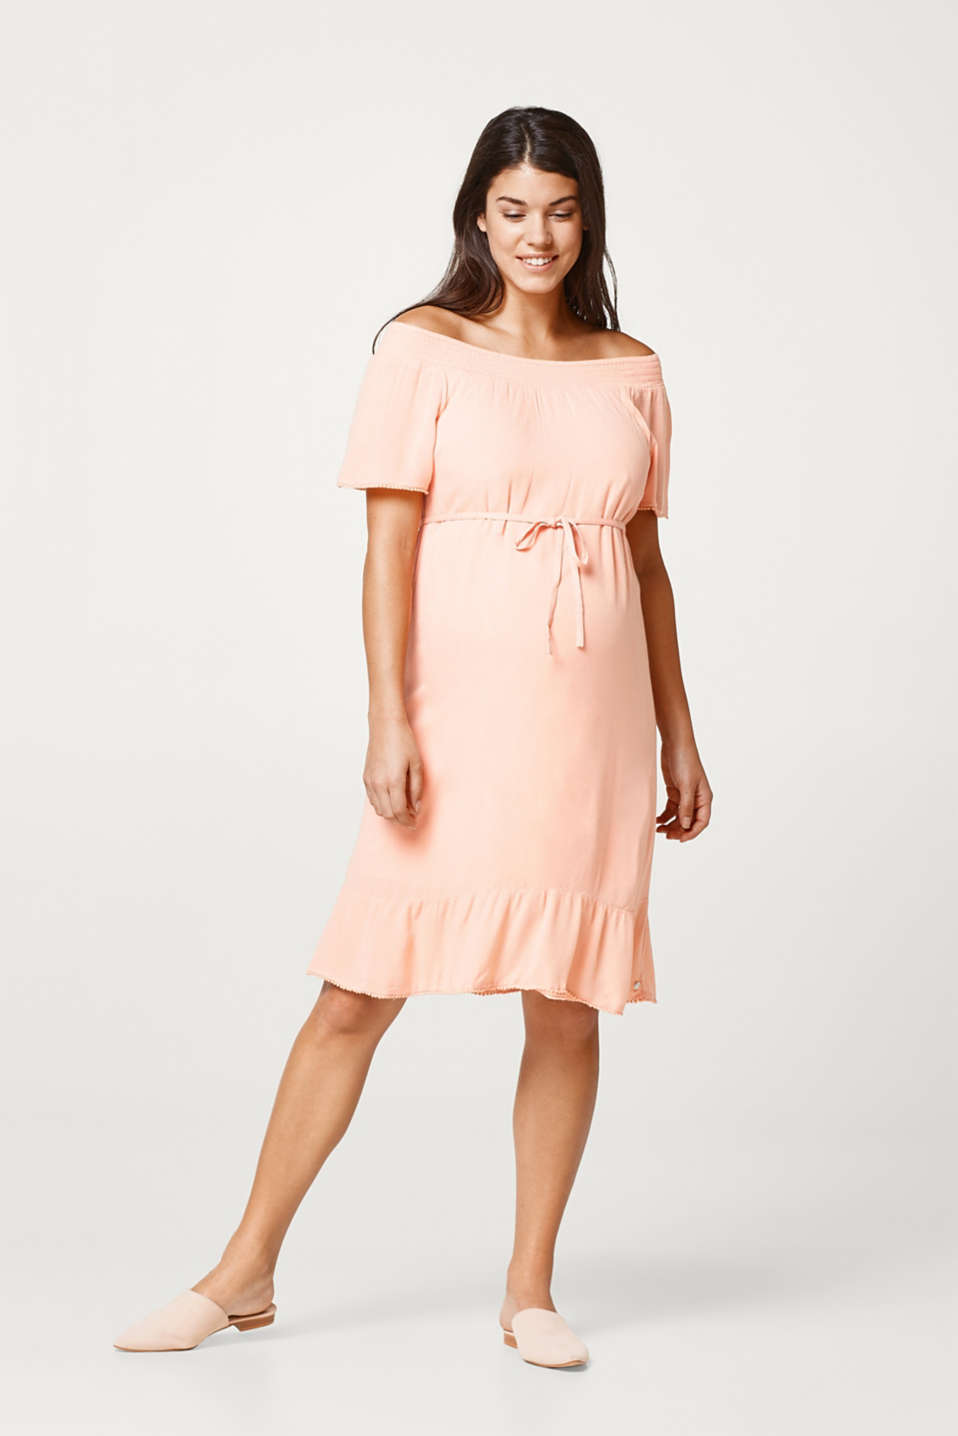 Flowing crinkle dress with dainty borders